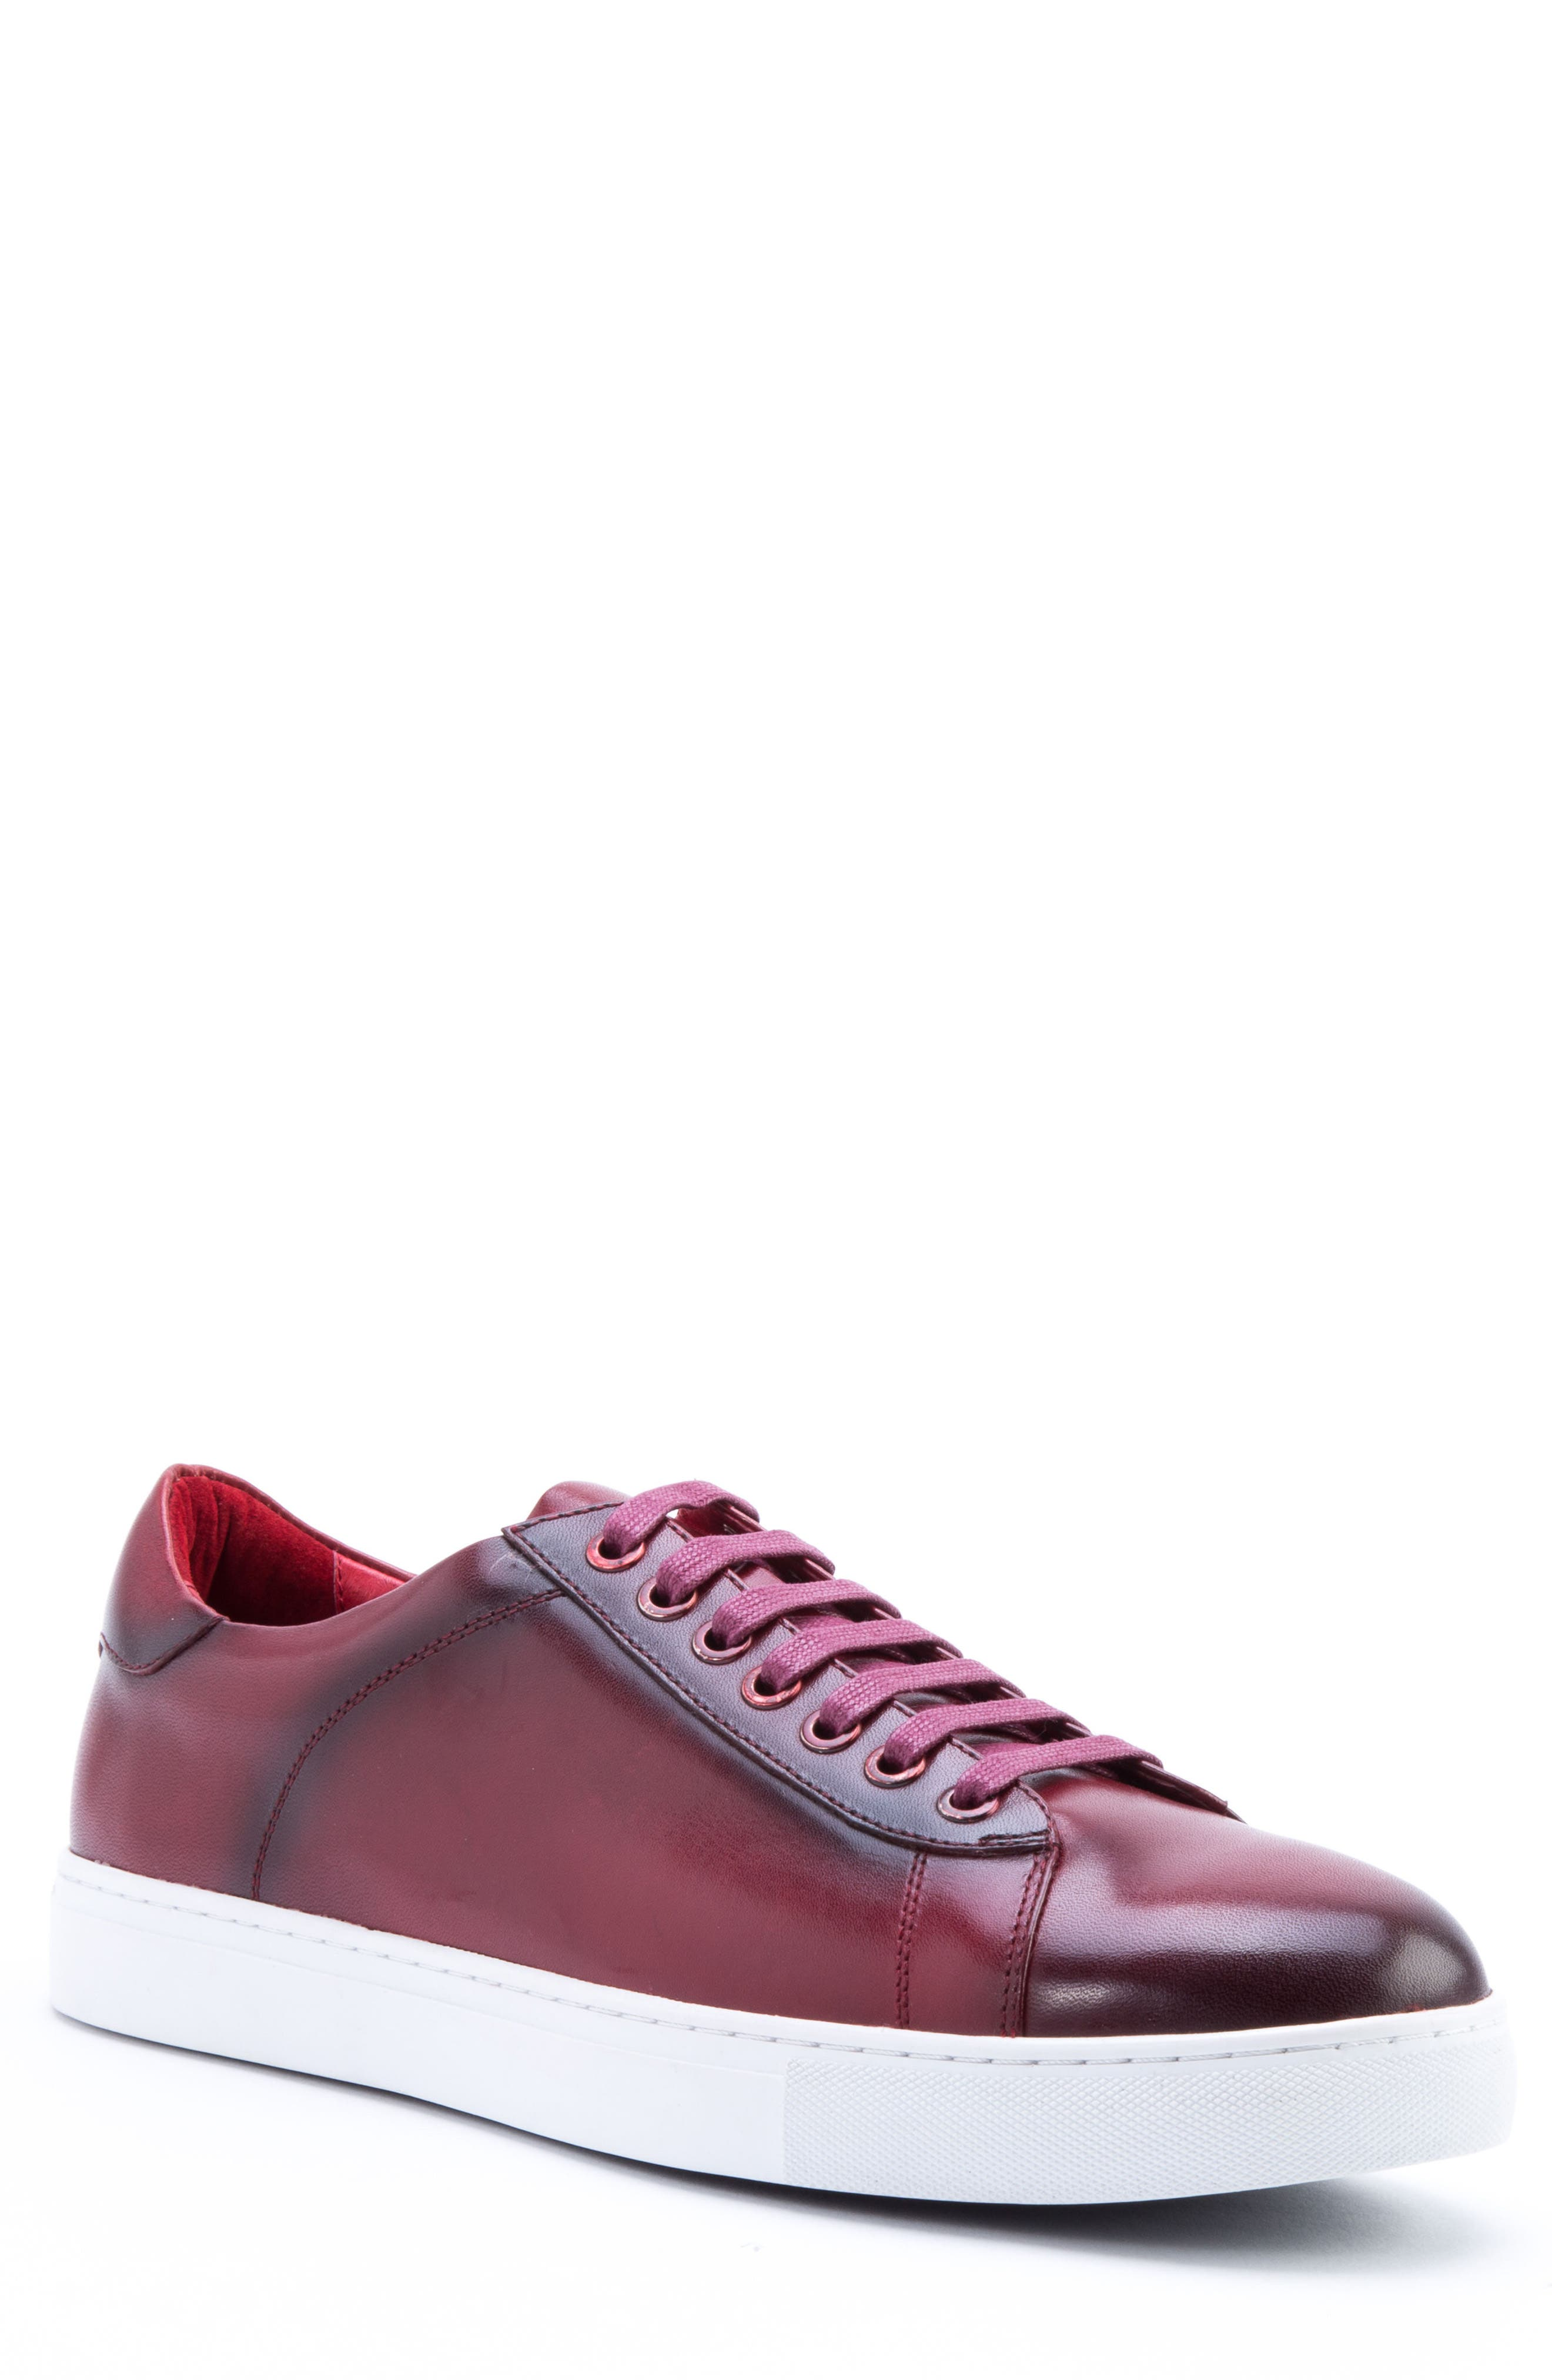 Music Low Top Sneaker,                         Main,                         color, Red Leather